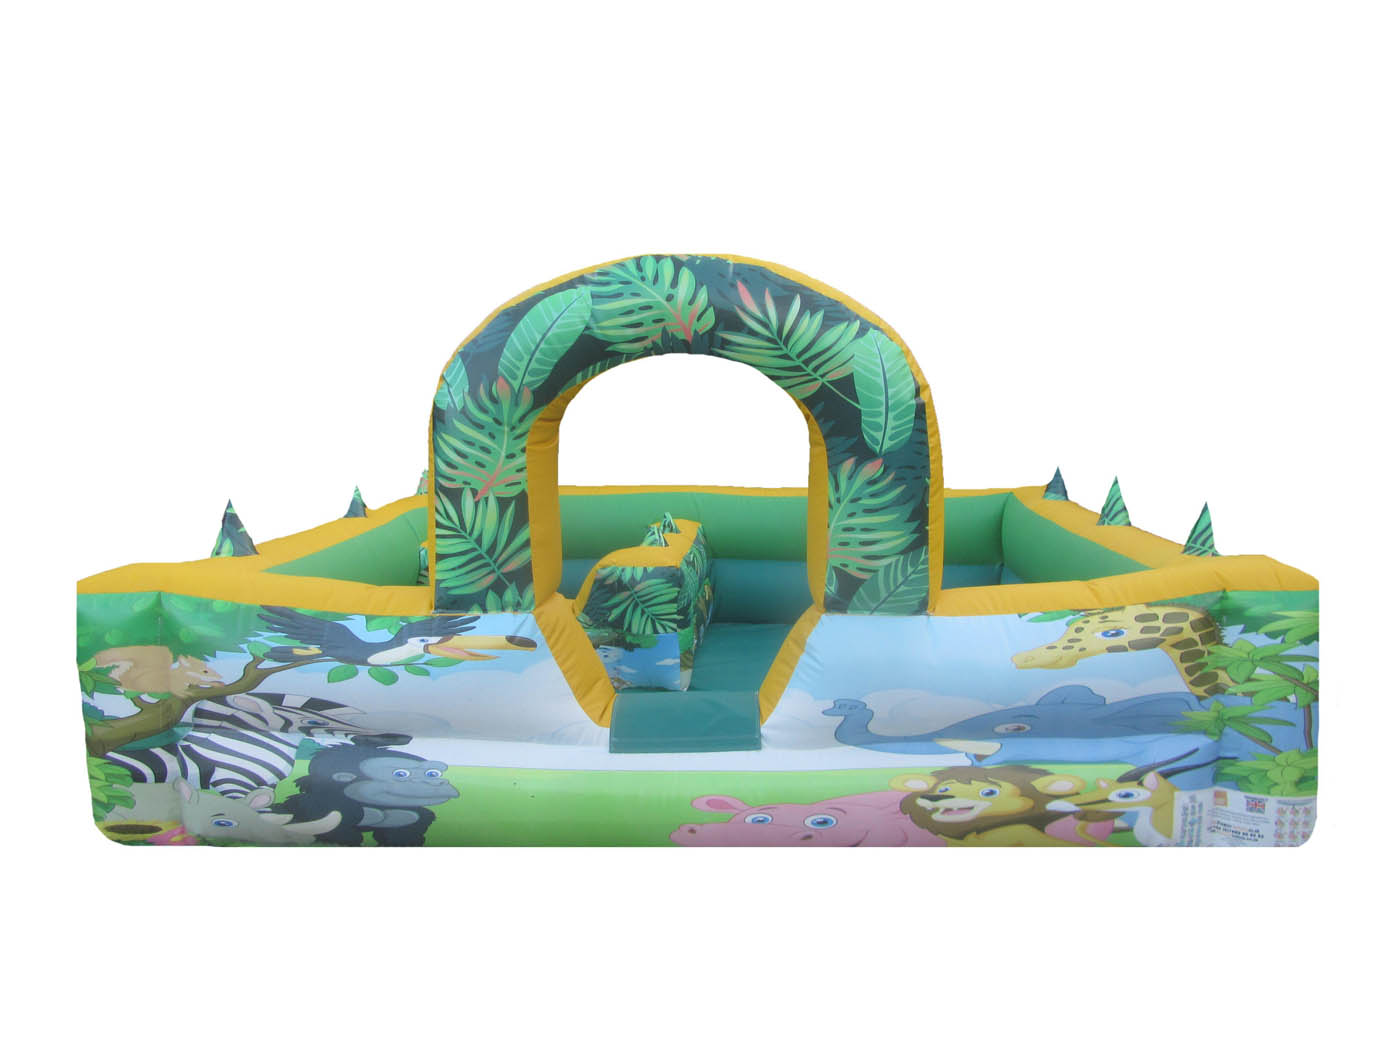 Commercial Inflatable Play Park with Jungle Themed Artwork